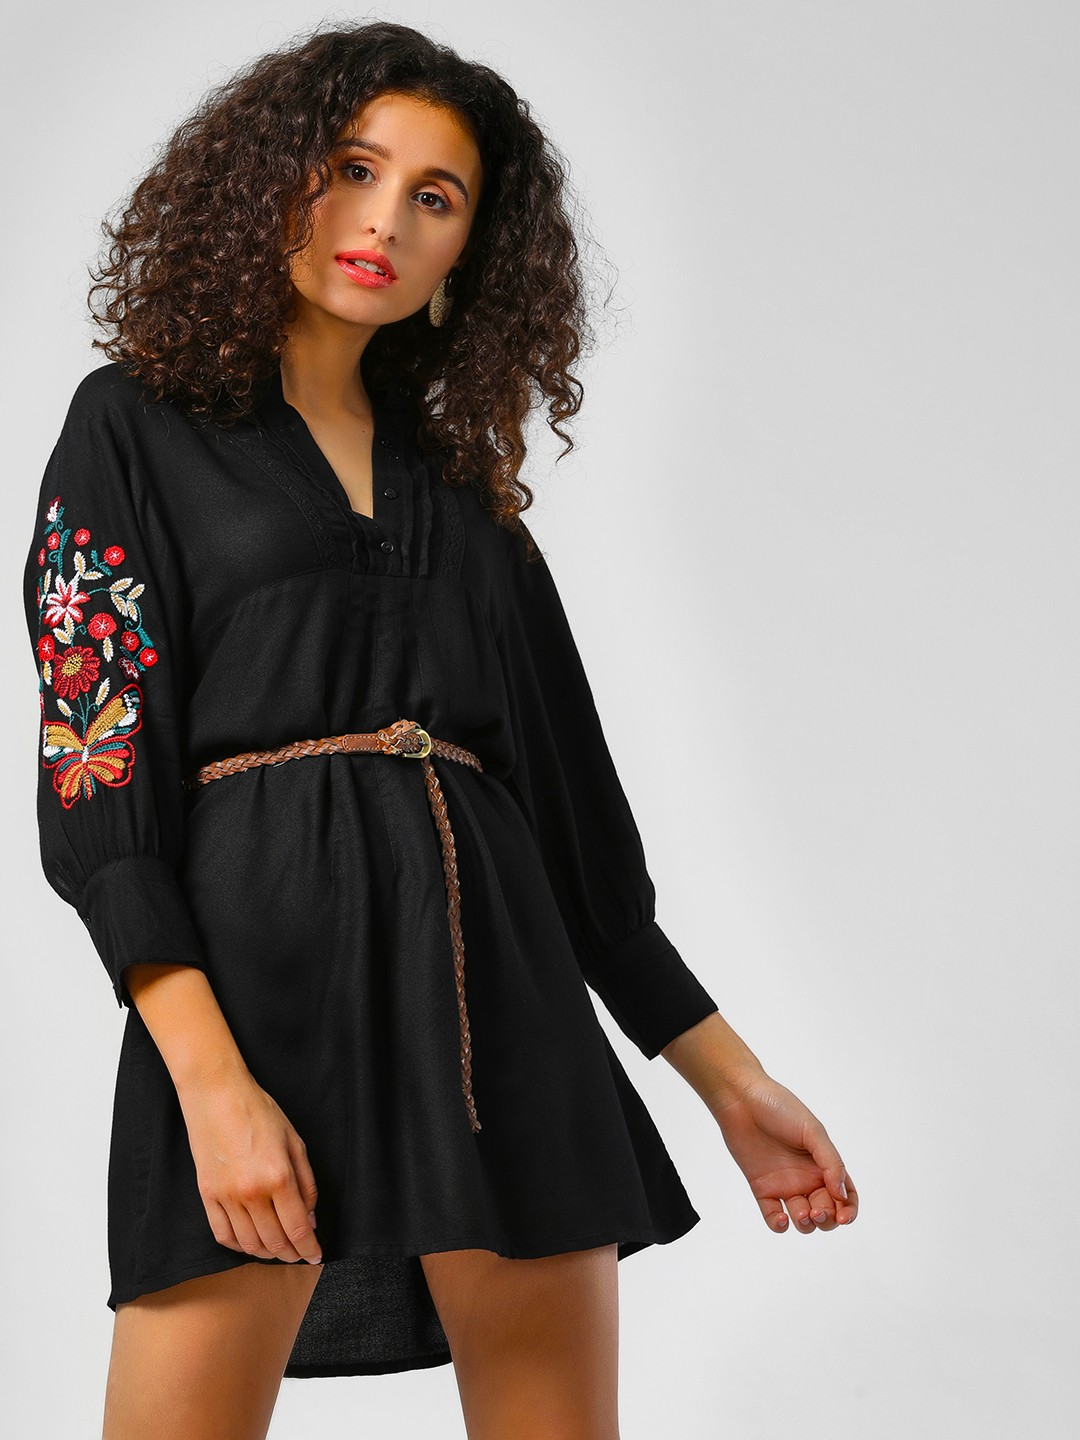 Sbuys Black Floral Embroidered Sleeve Shift Dress 1